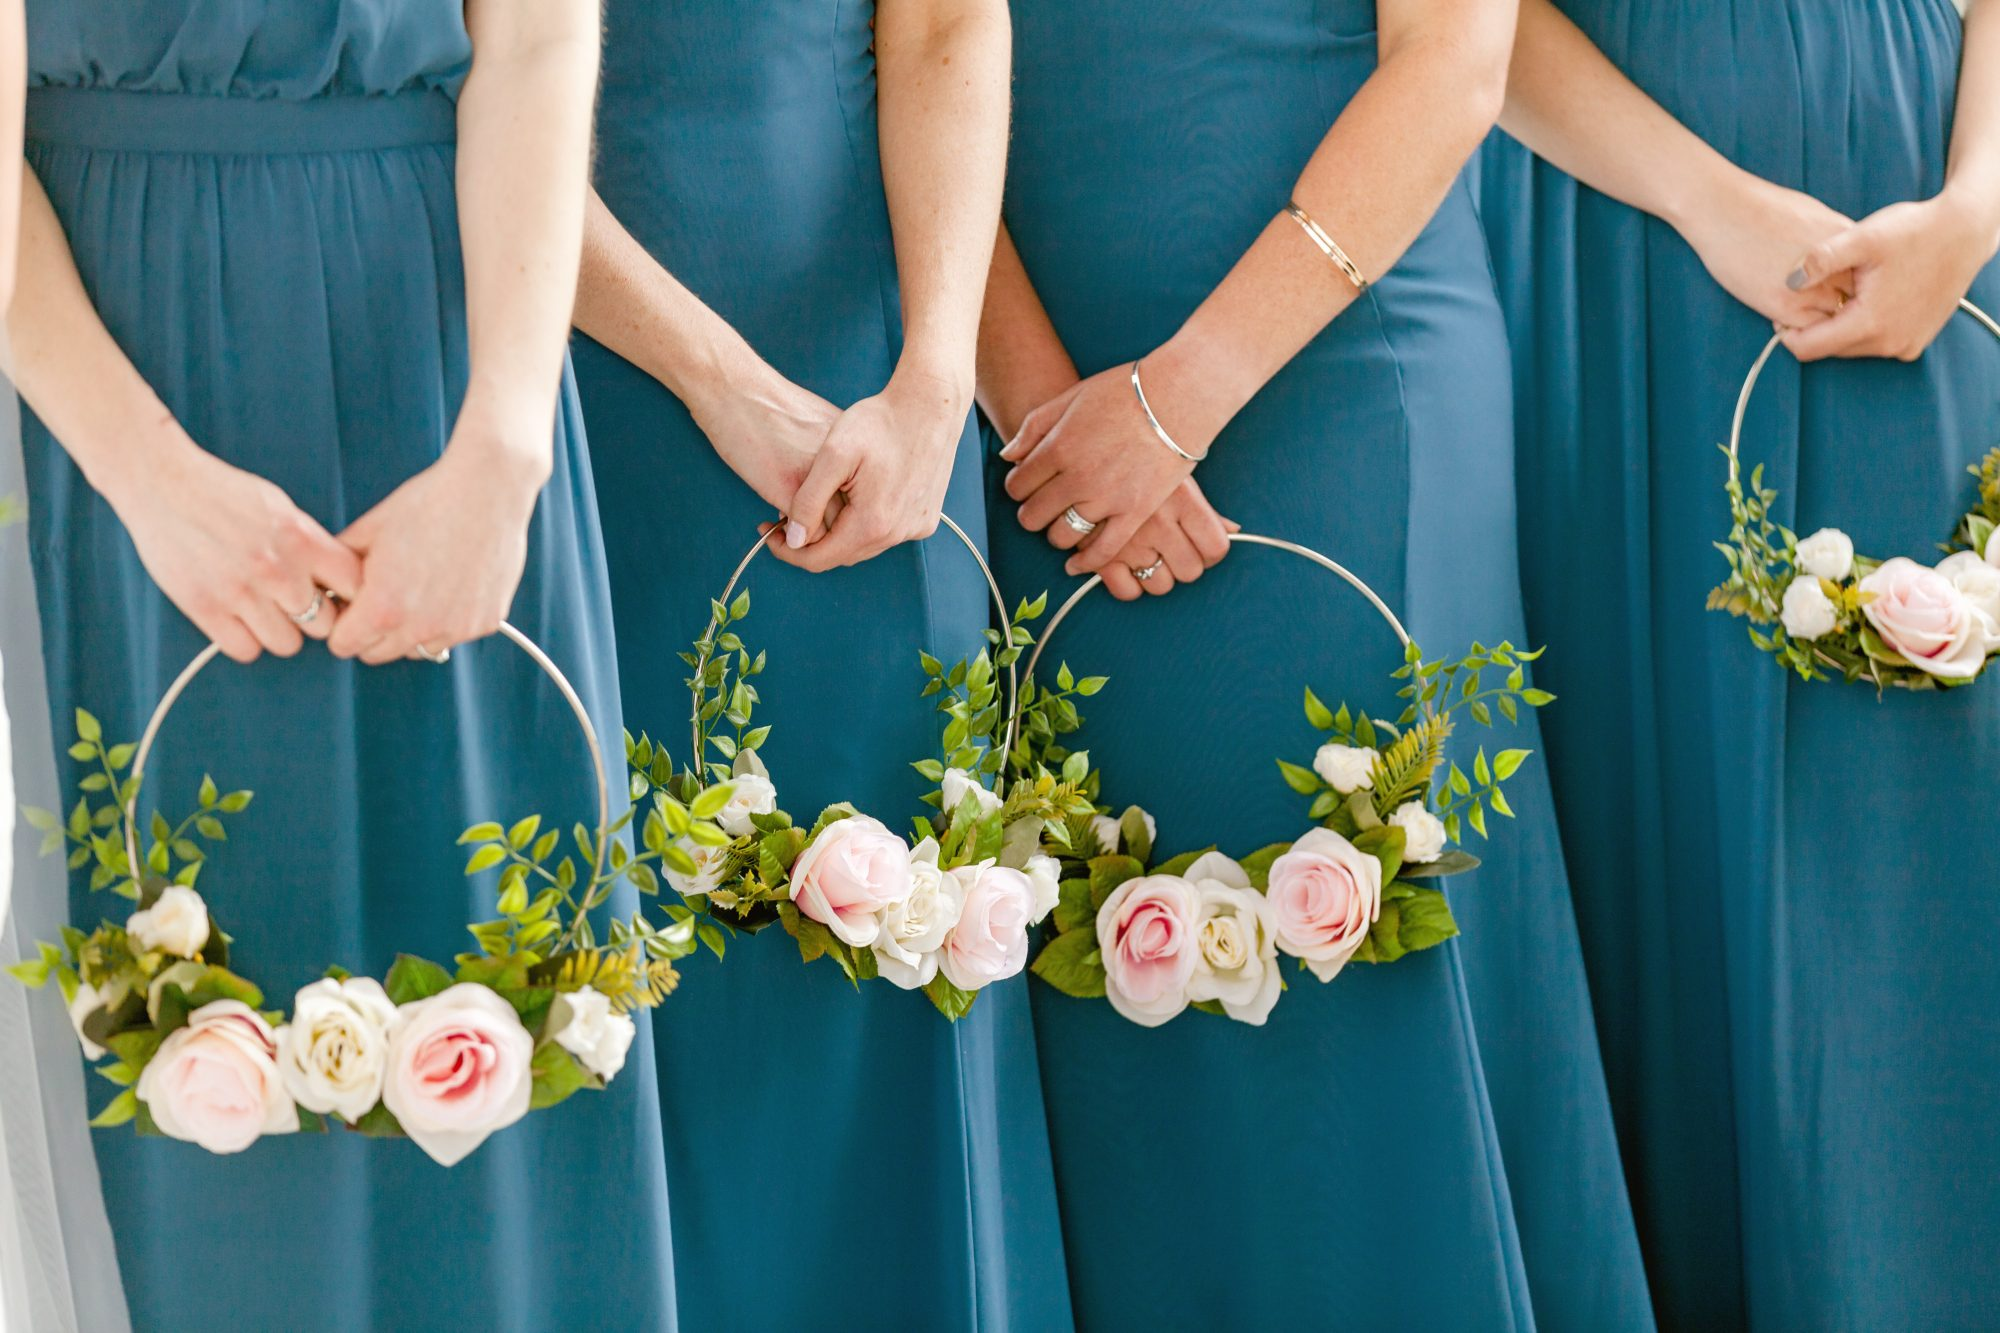 bridesmaids carrying floral wreaths